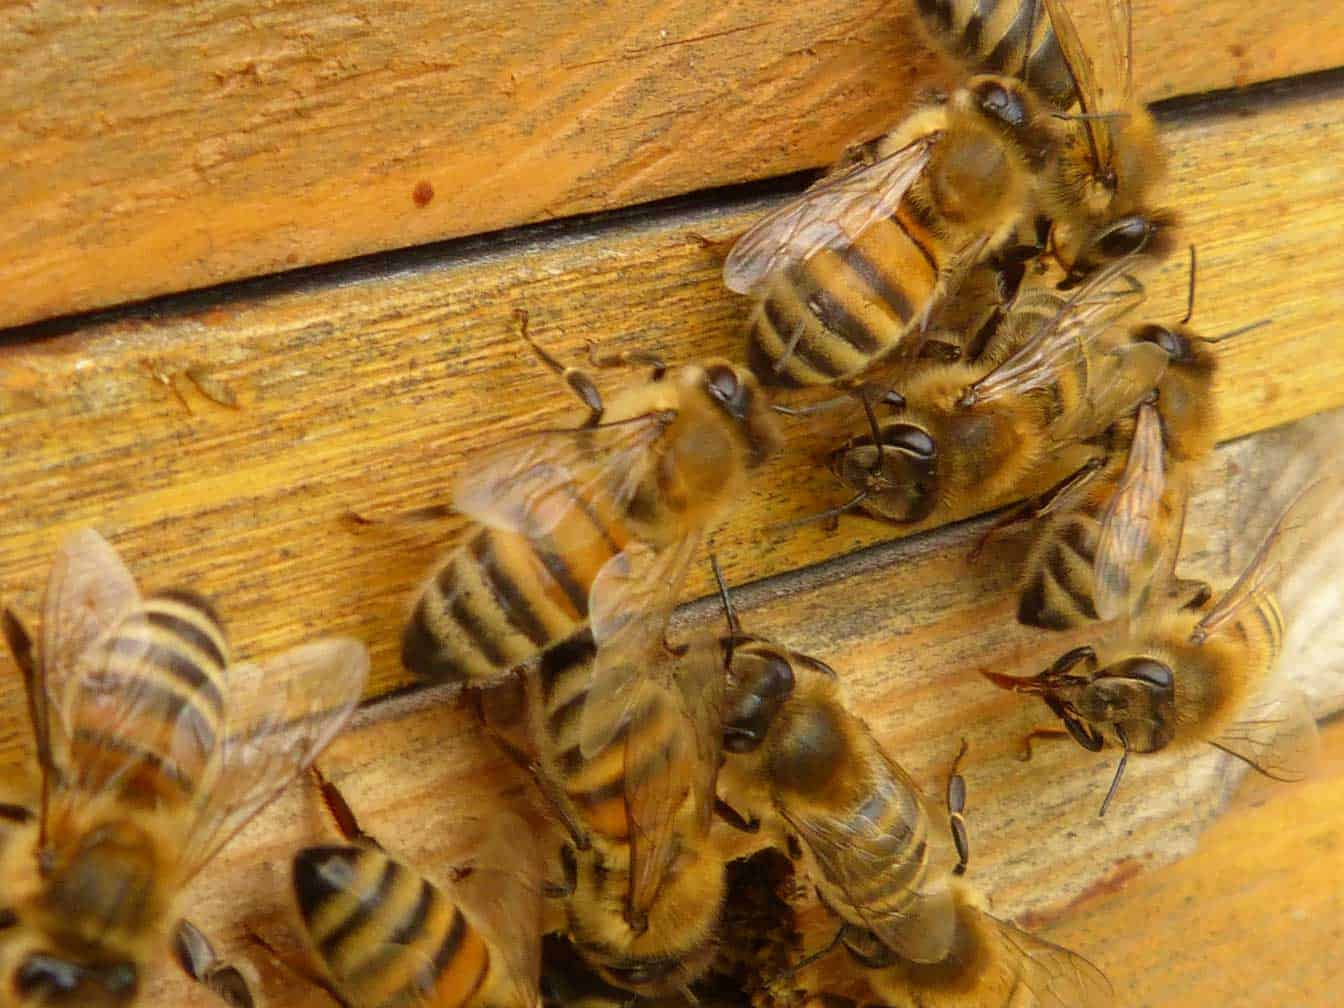 bees on side of hive